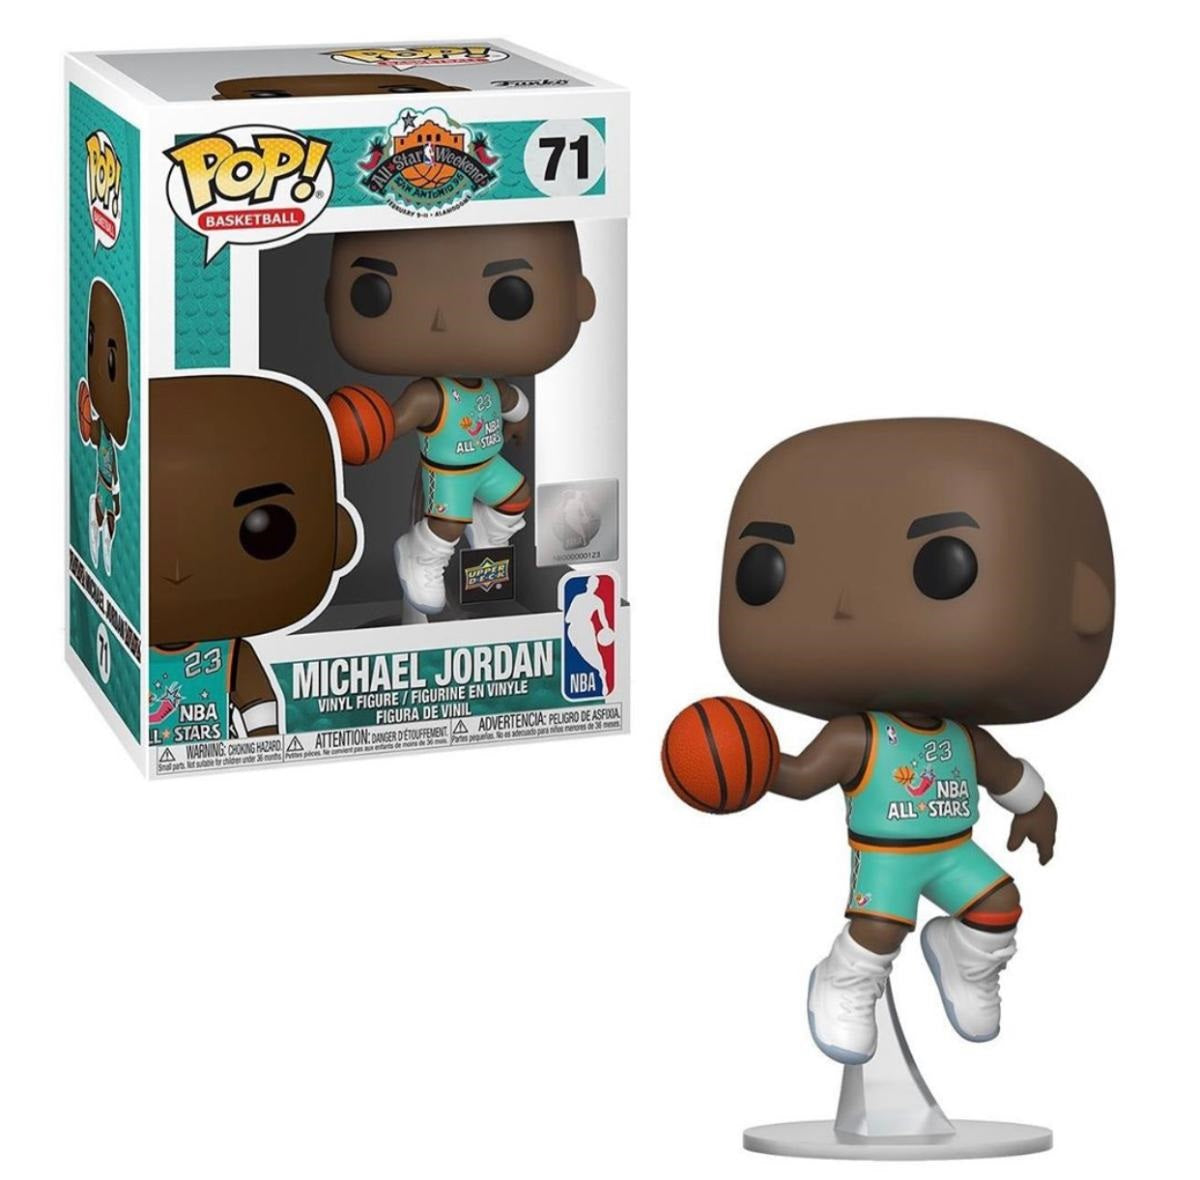 Michael Jordan All Star Jersey Upper Deck Funko Pop - Convention Exclusive